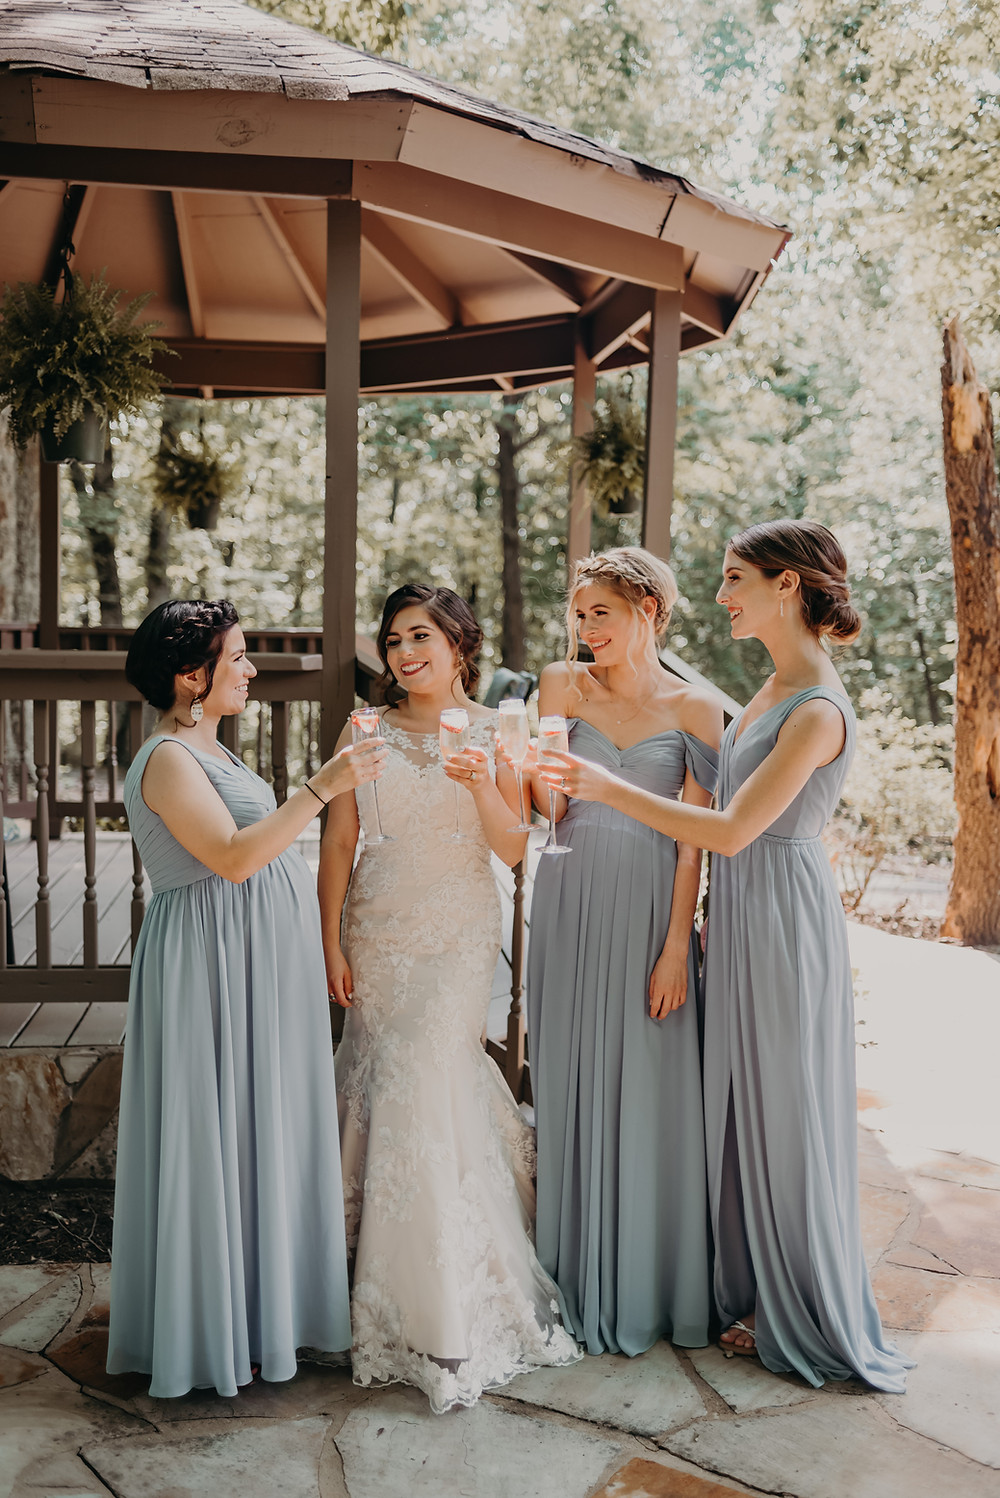 Bride in a lace dress with her bridesmaids with blue dresses